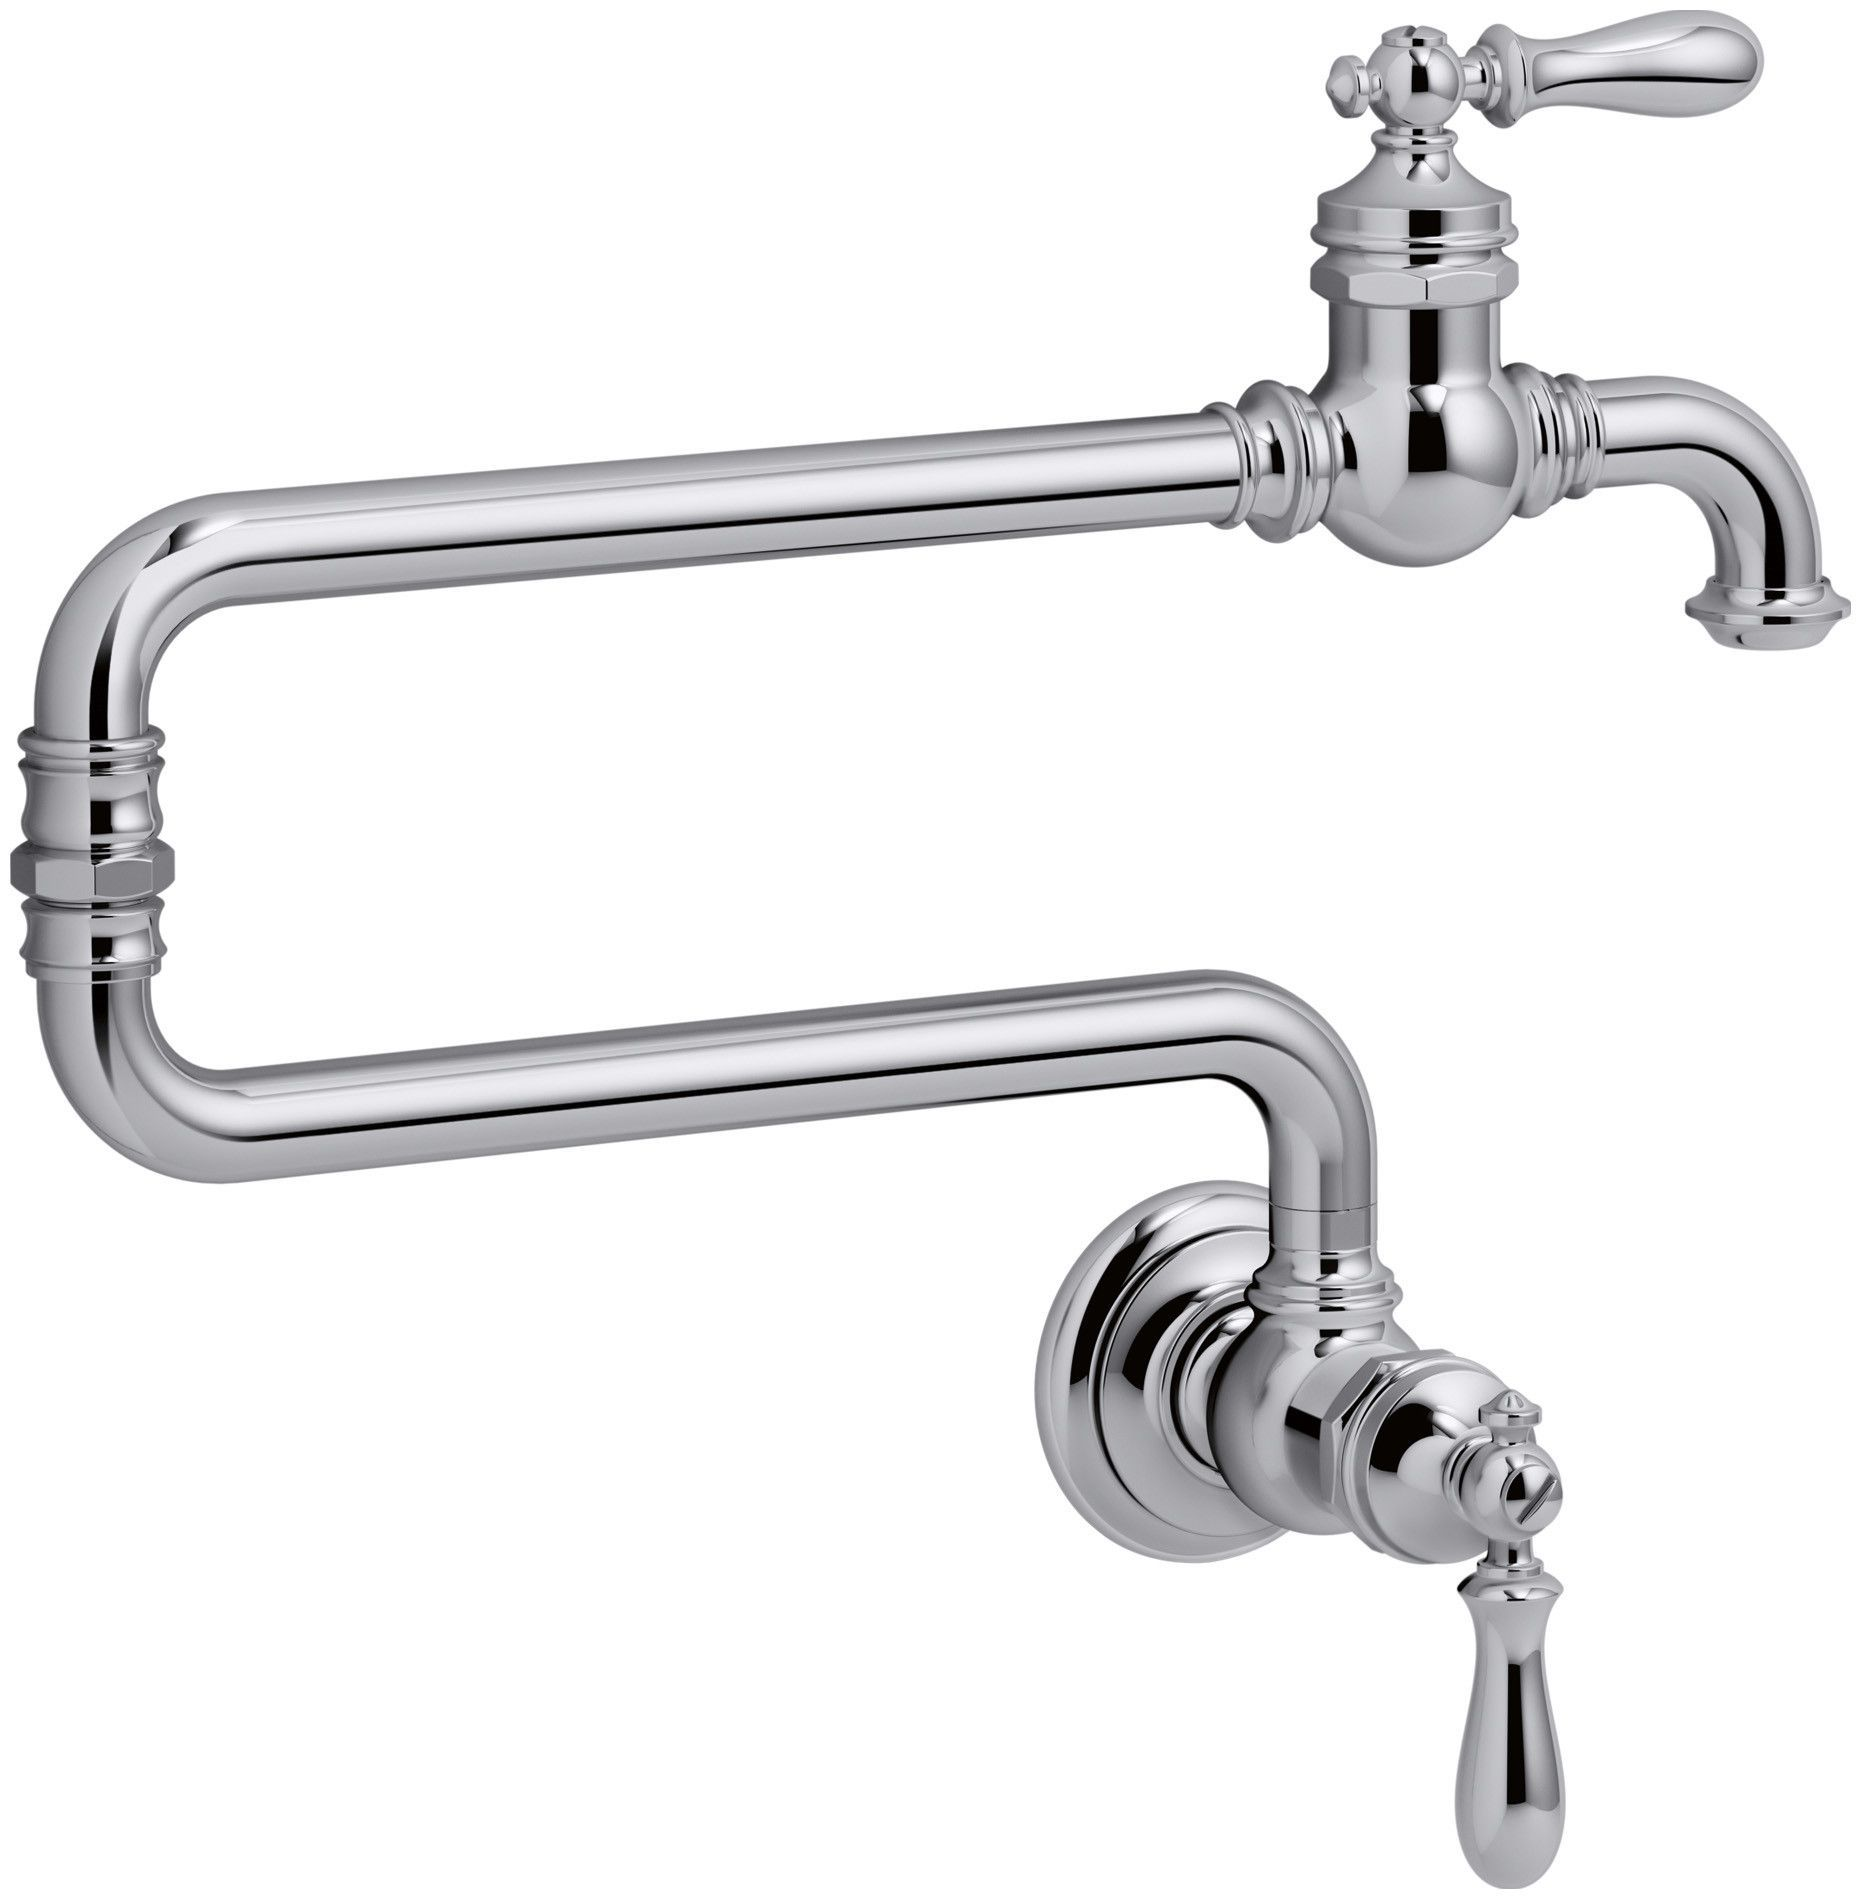 Artifacts(R) Single-Hole Wall-Mount Pot Filler Kitchen Sink Faucet ...